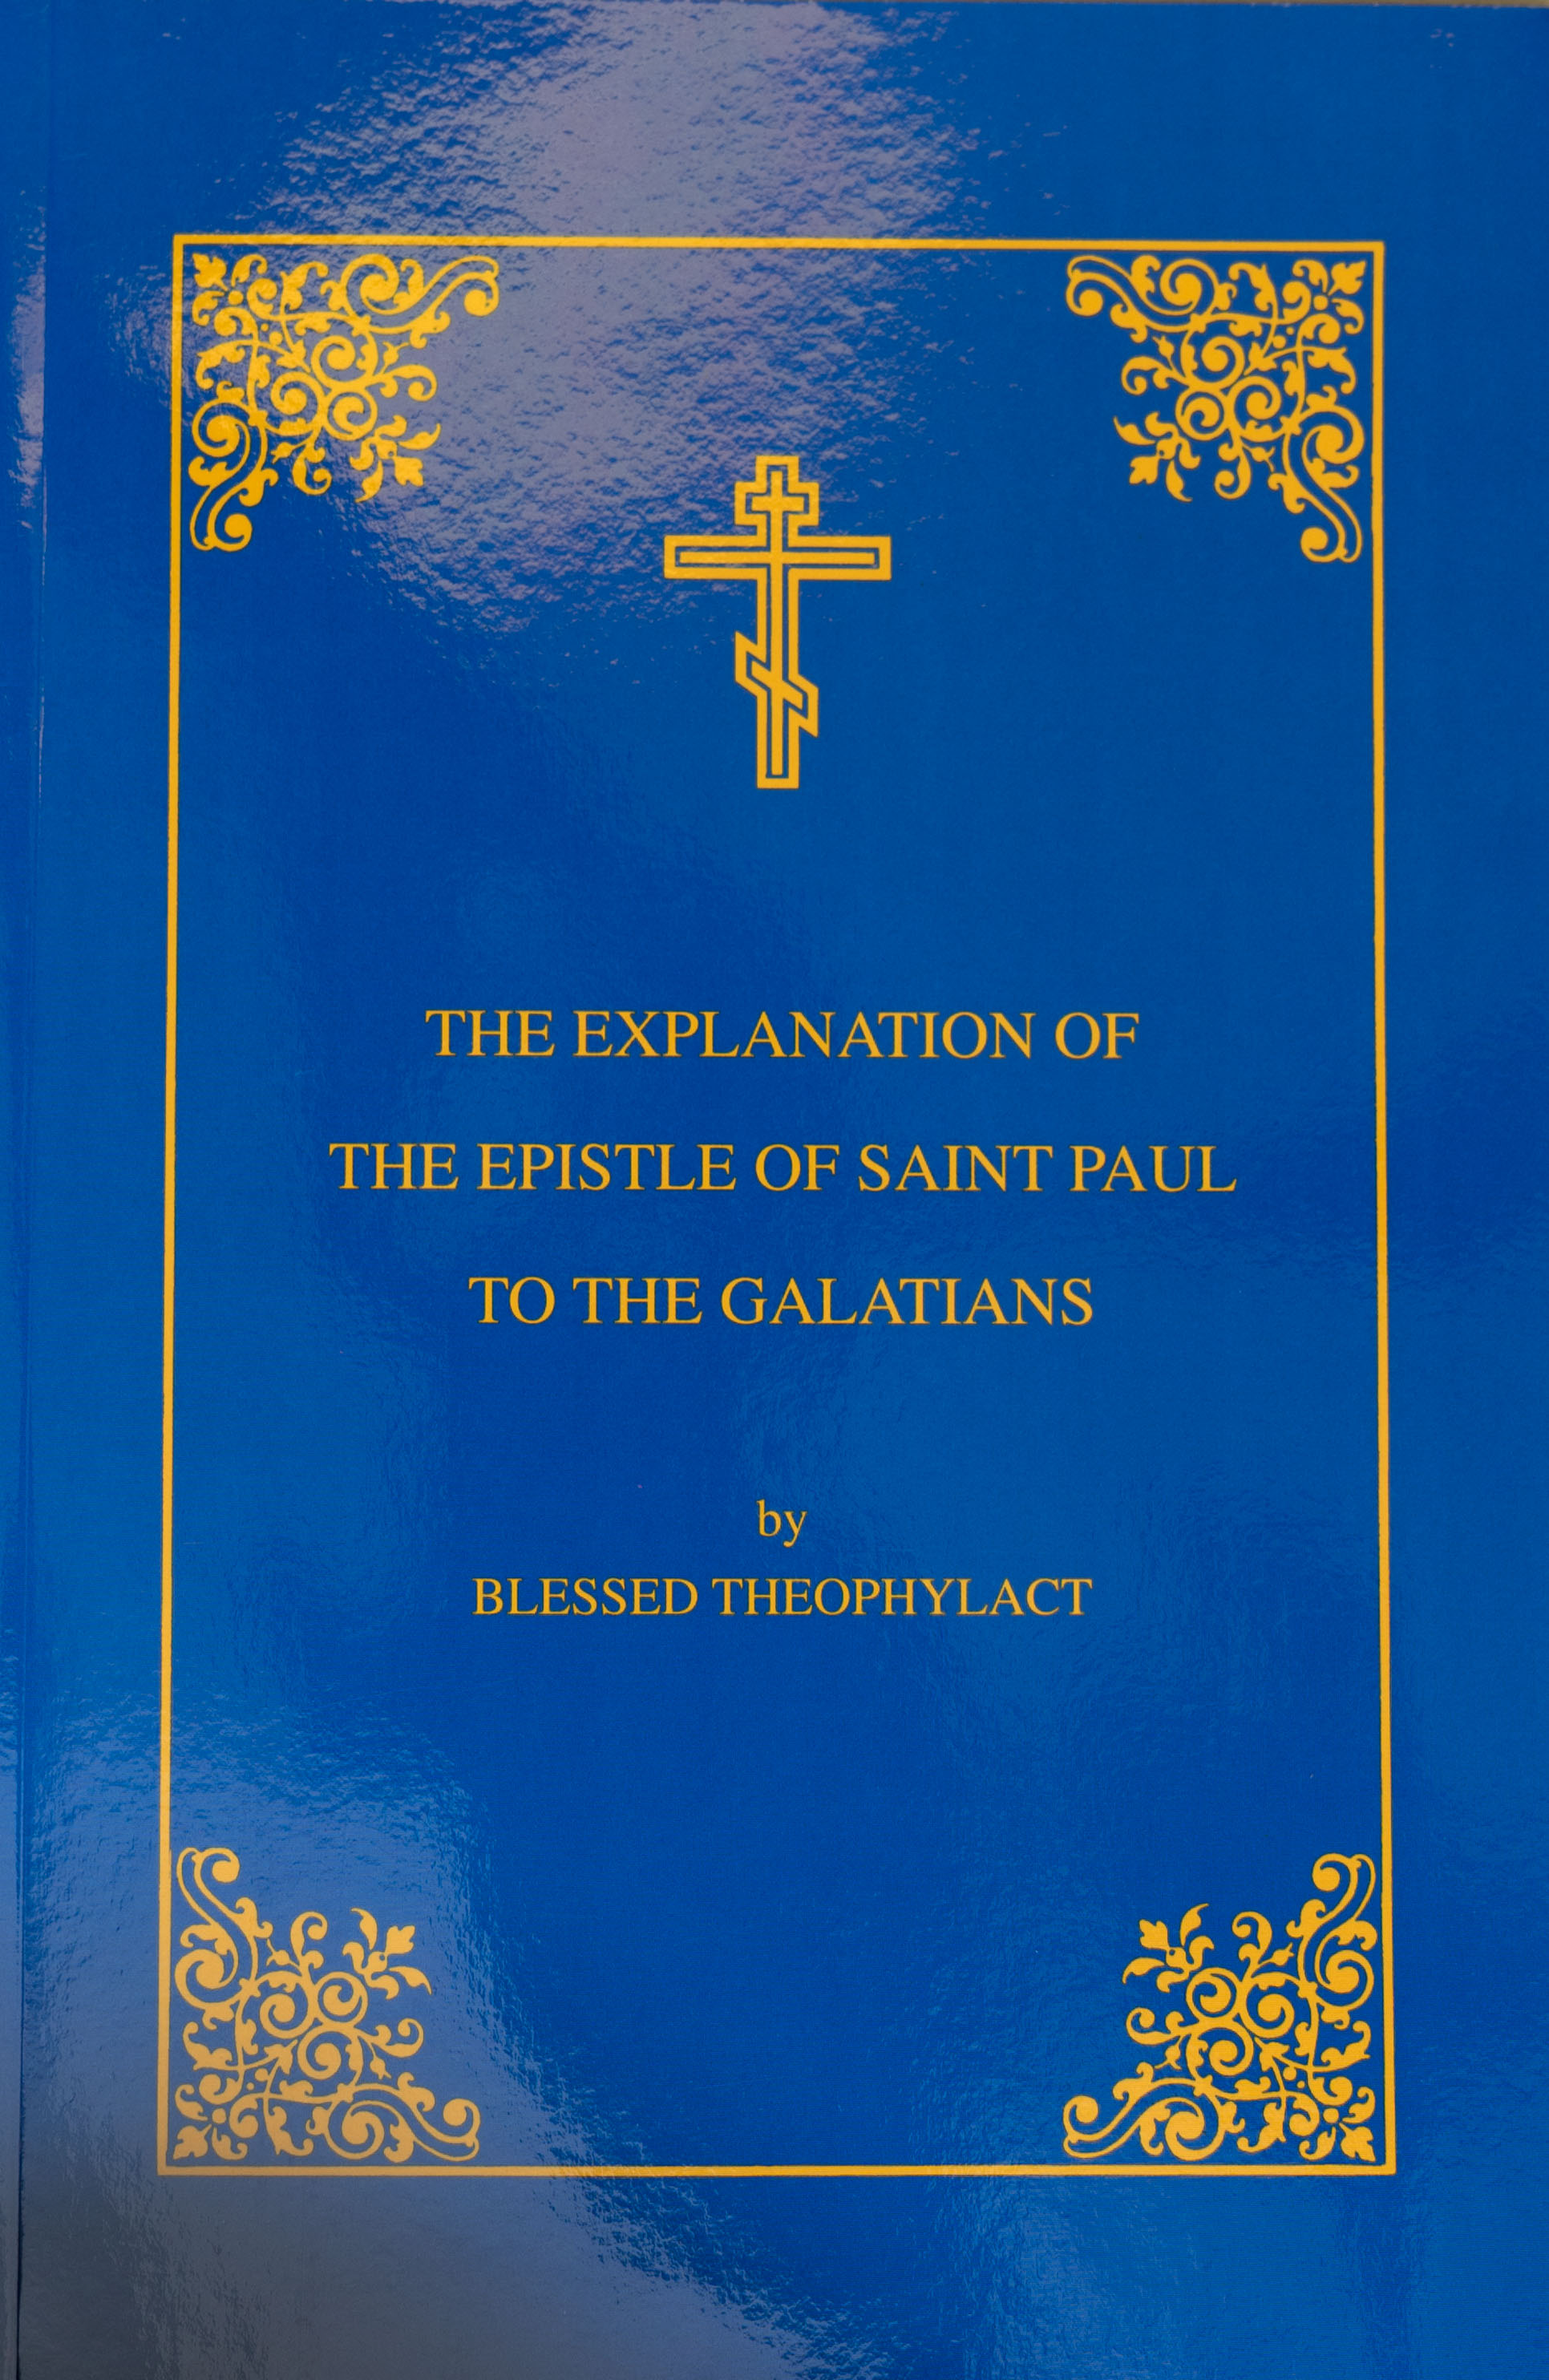 The Explanation of The Epistle of Saint Paul to the Galatians